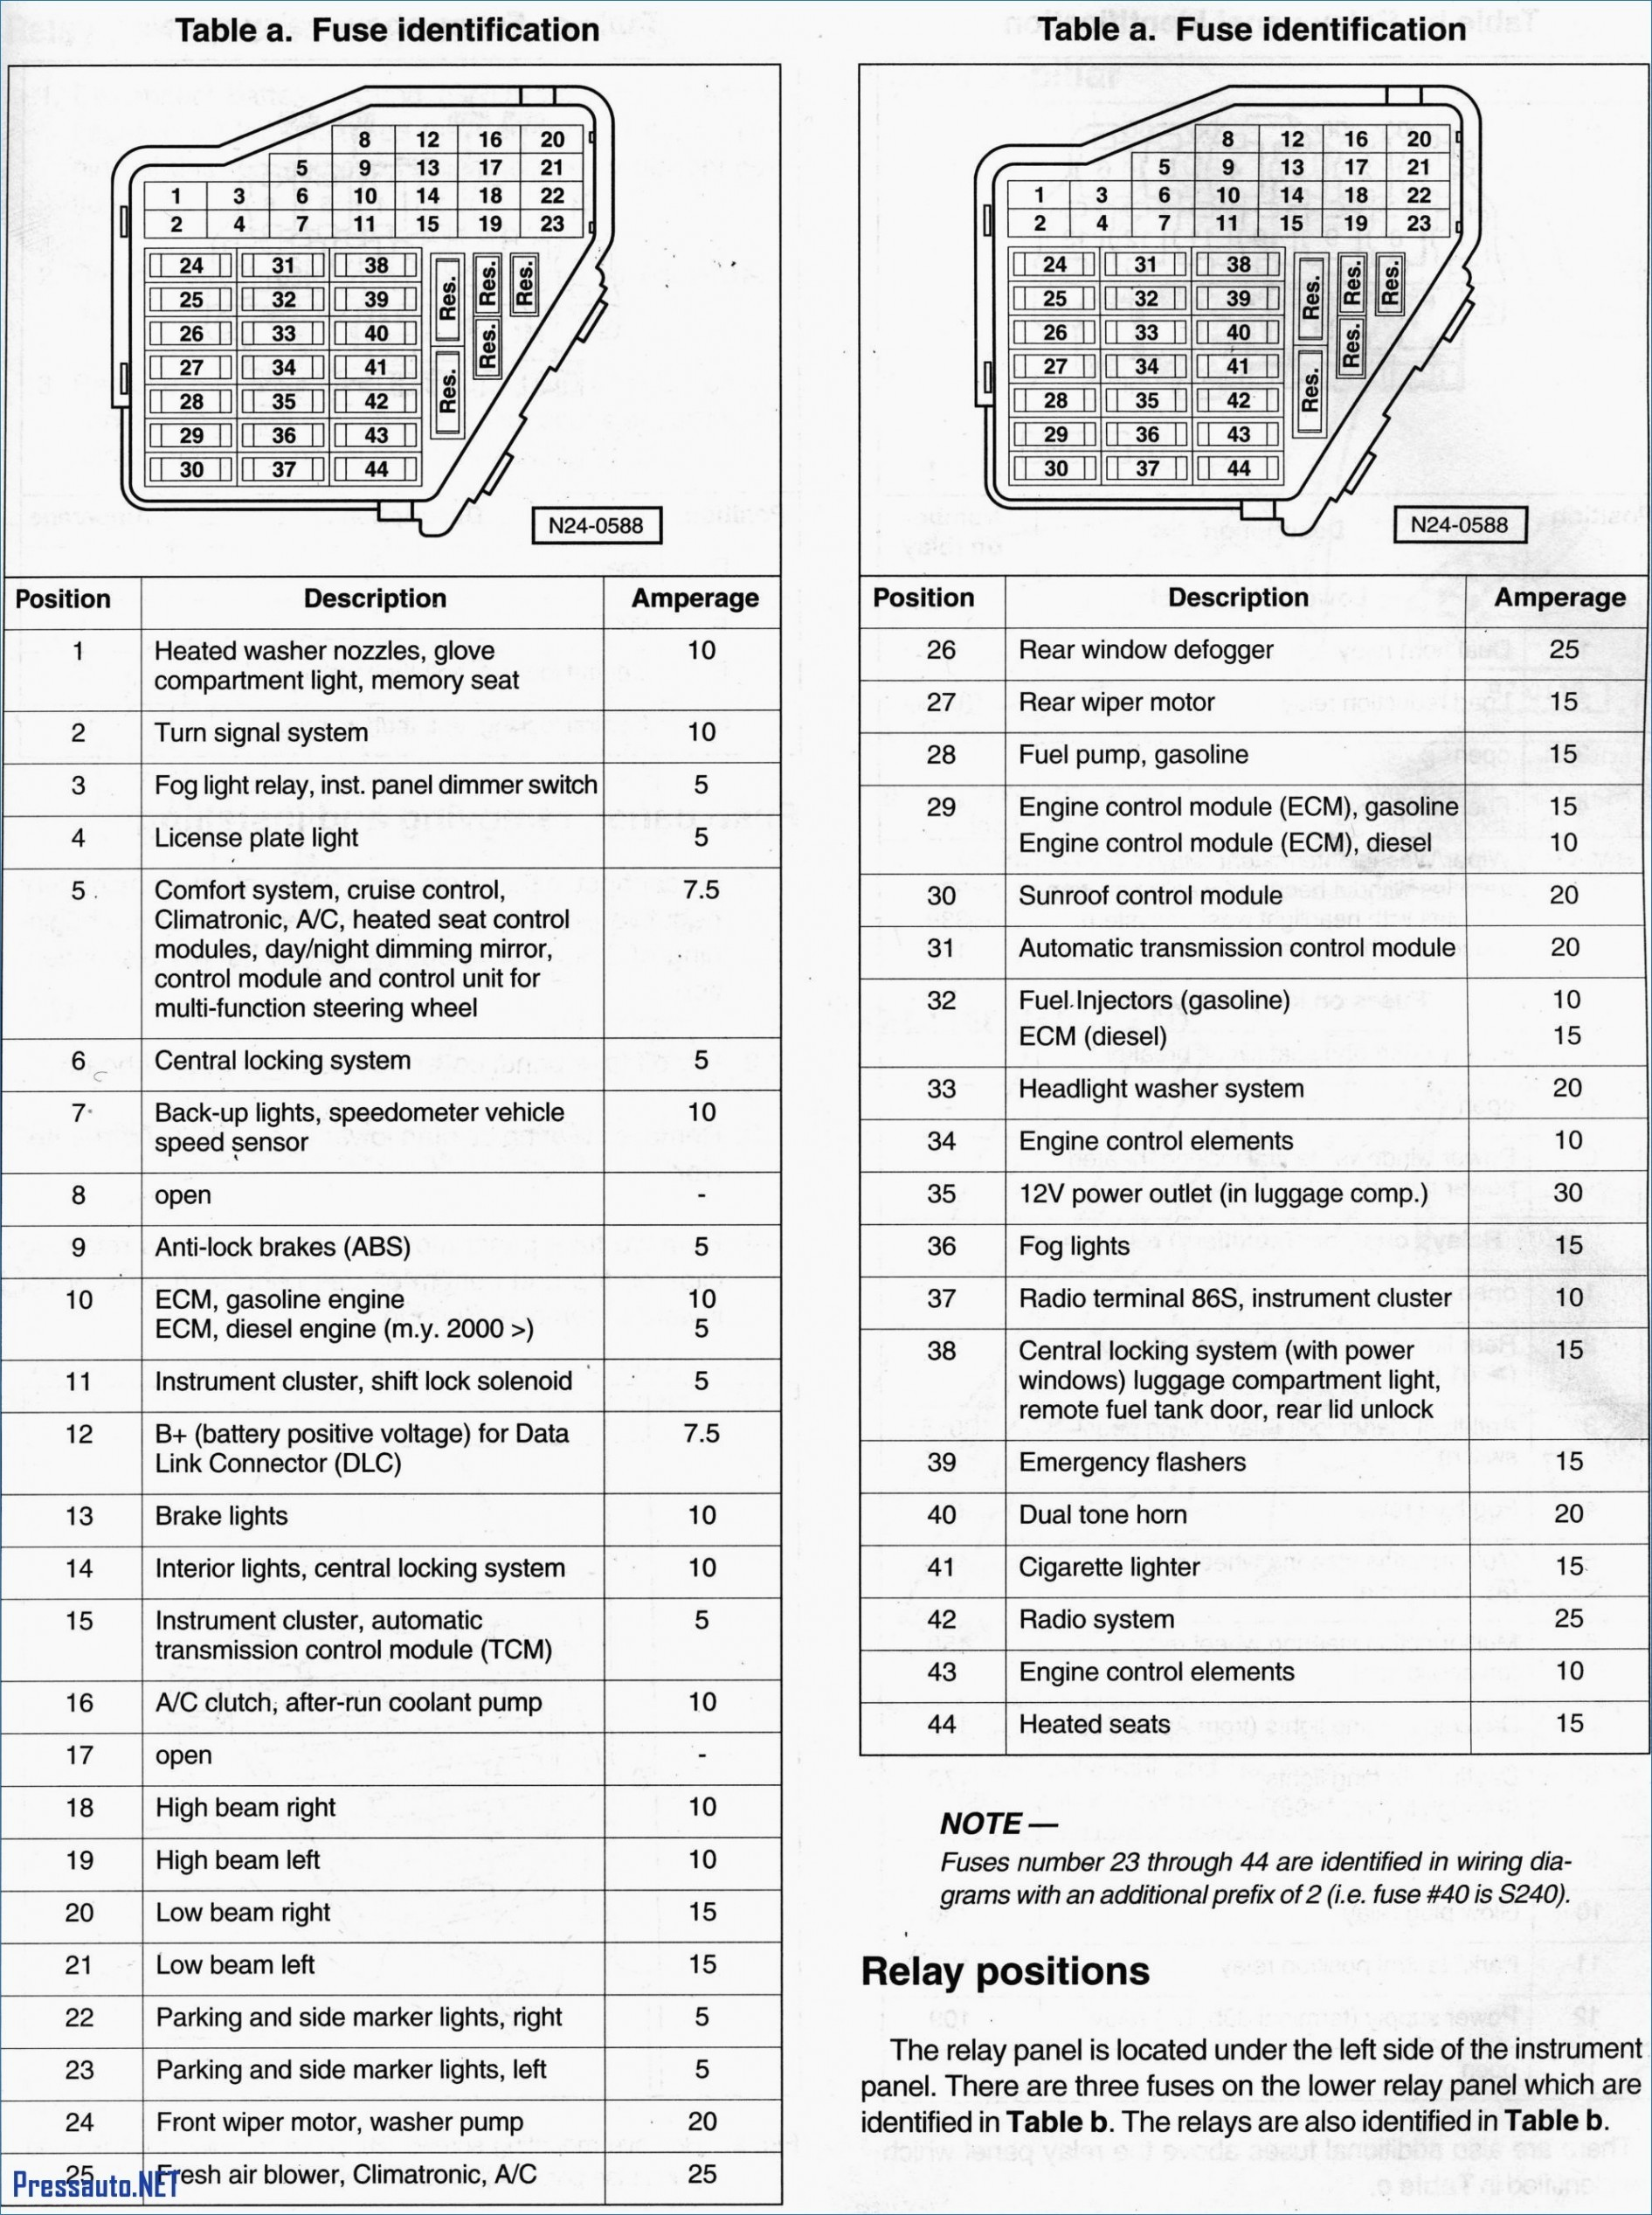 05 Audi A6 Fuse Box - Wiring Diagram Data clear-build -  clear-build.portorhoca.it | Audi A6 Fuse Box Diagram |  | portorhoca.it